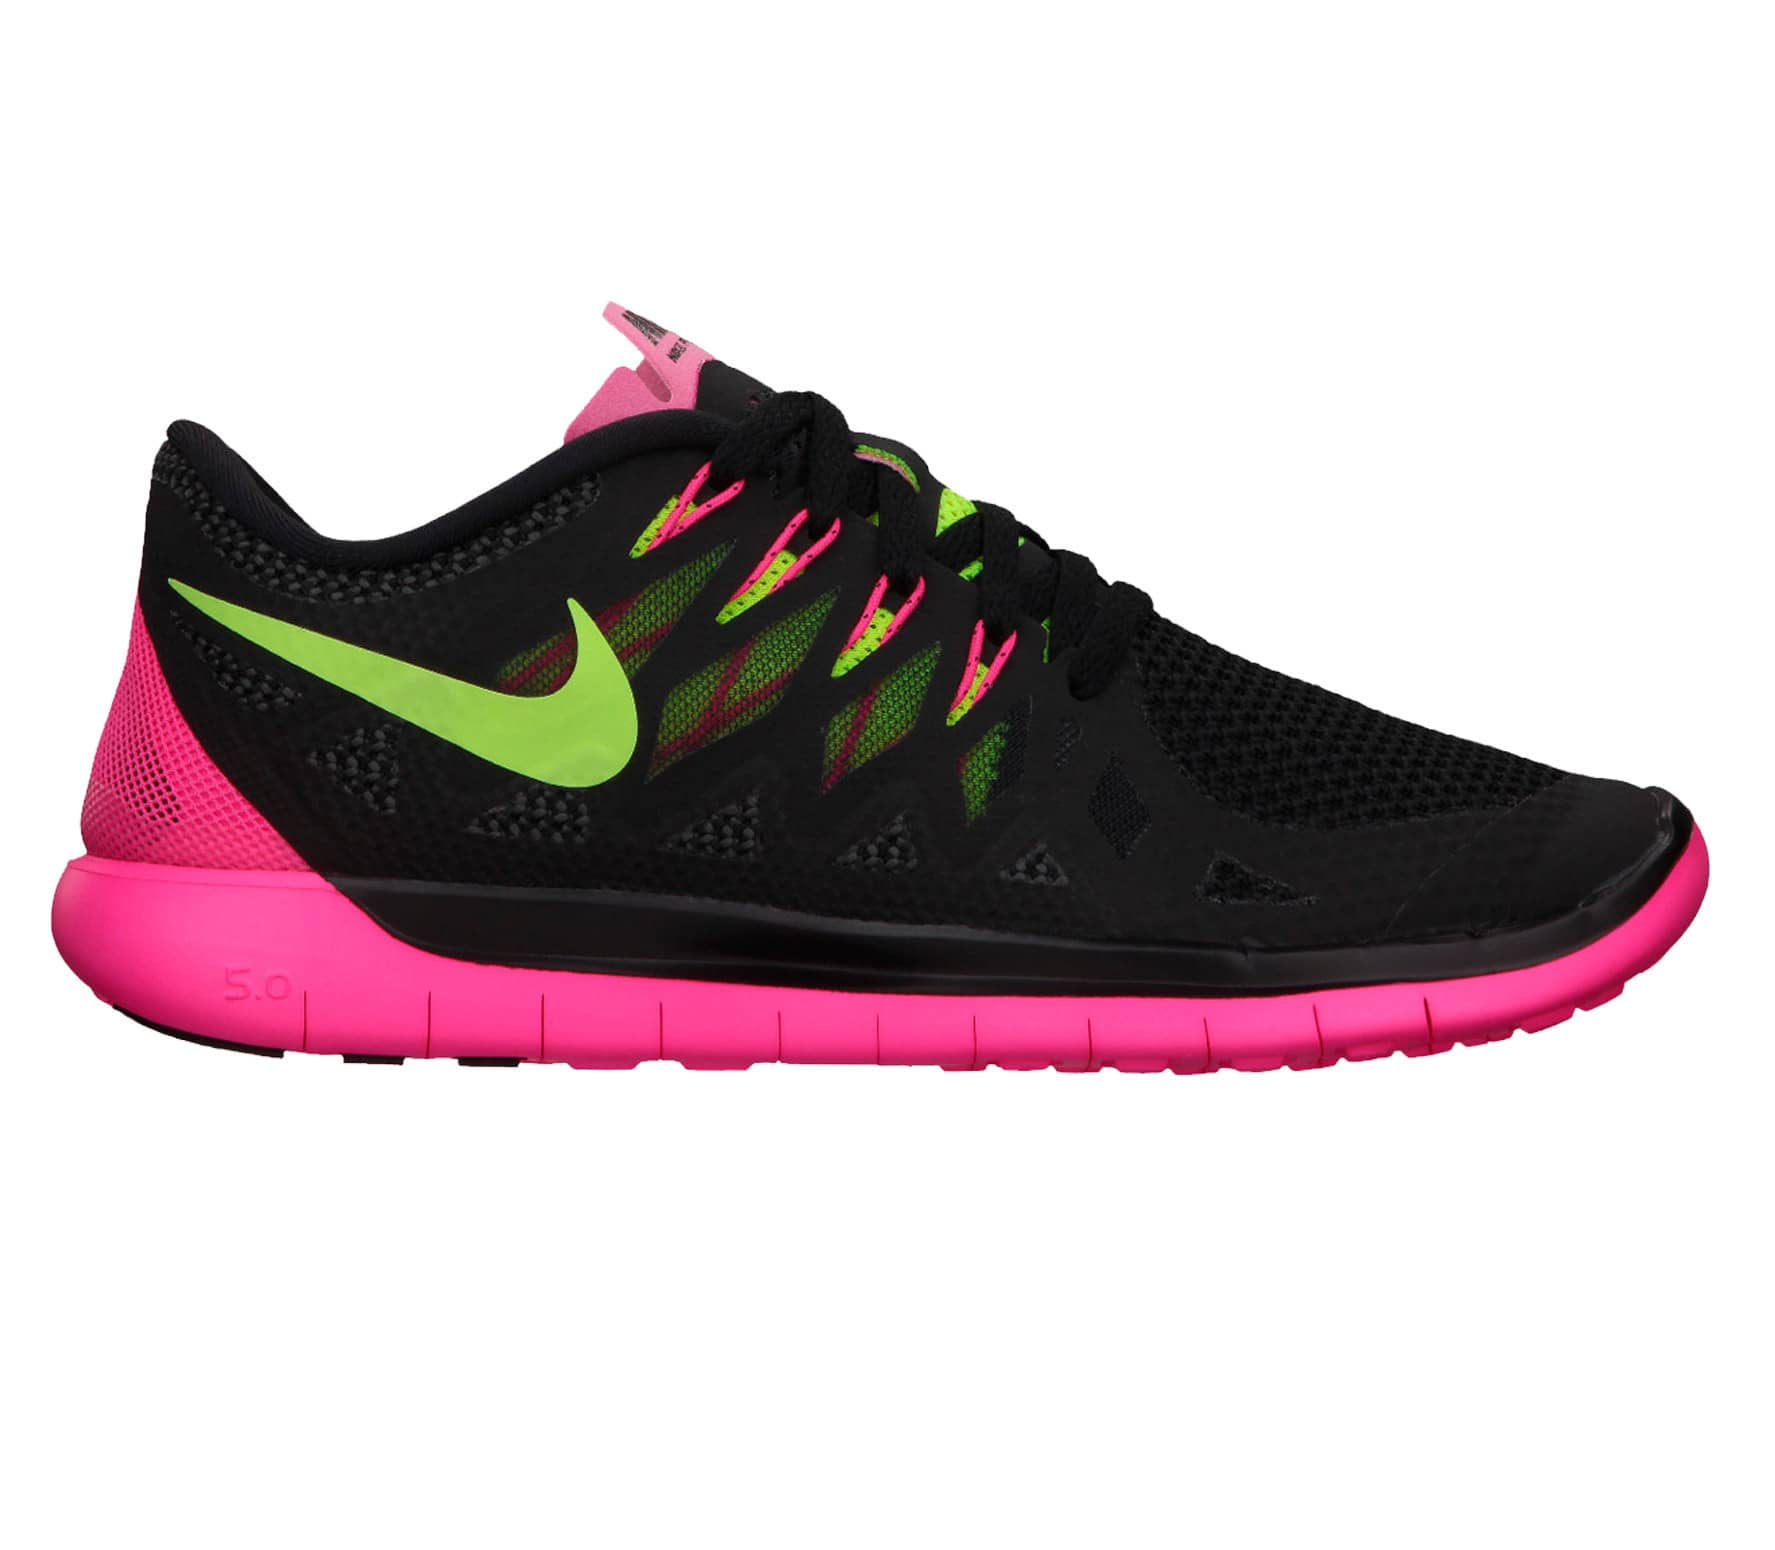 finest selection 24355 8be13 Nike - Free 5.0 women s running shoes (black pink green)